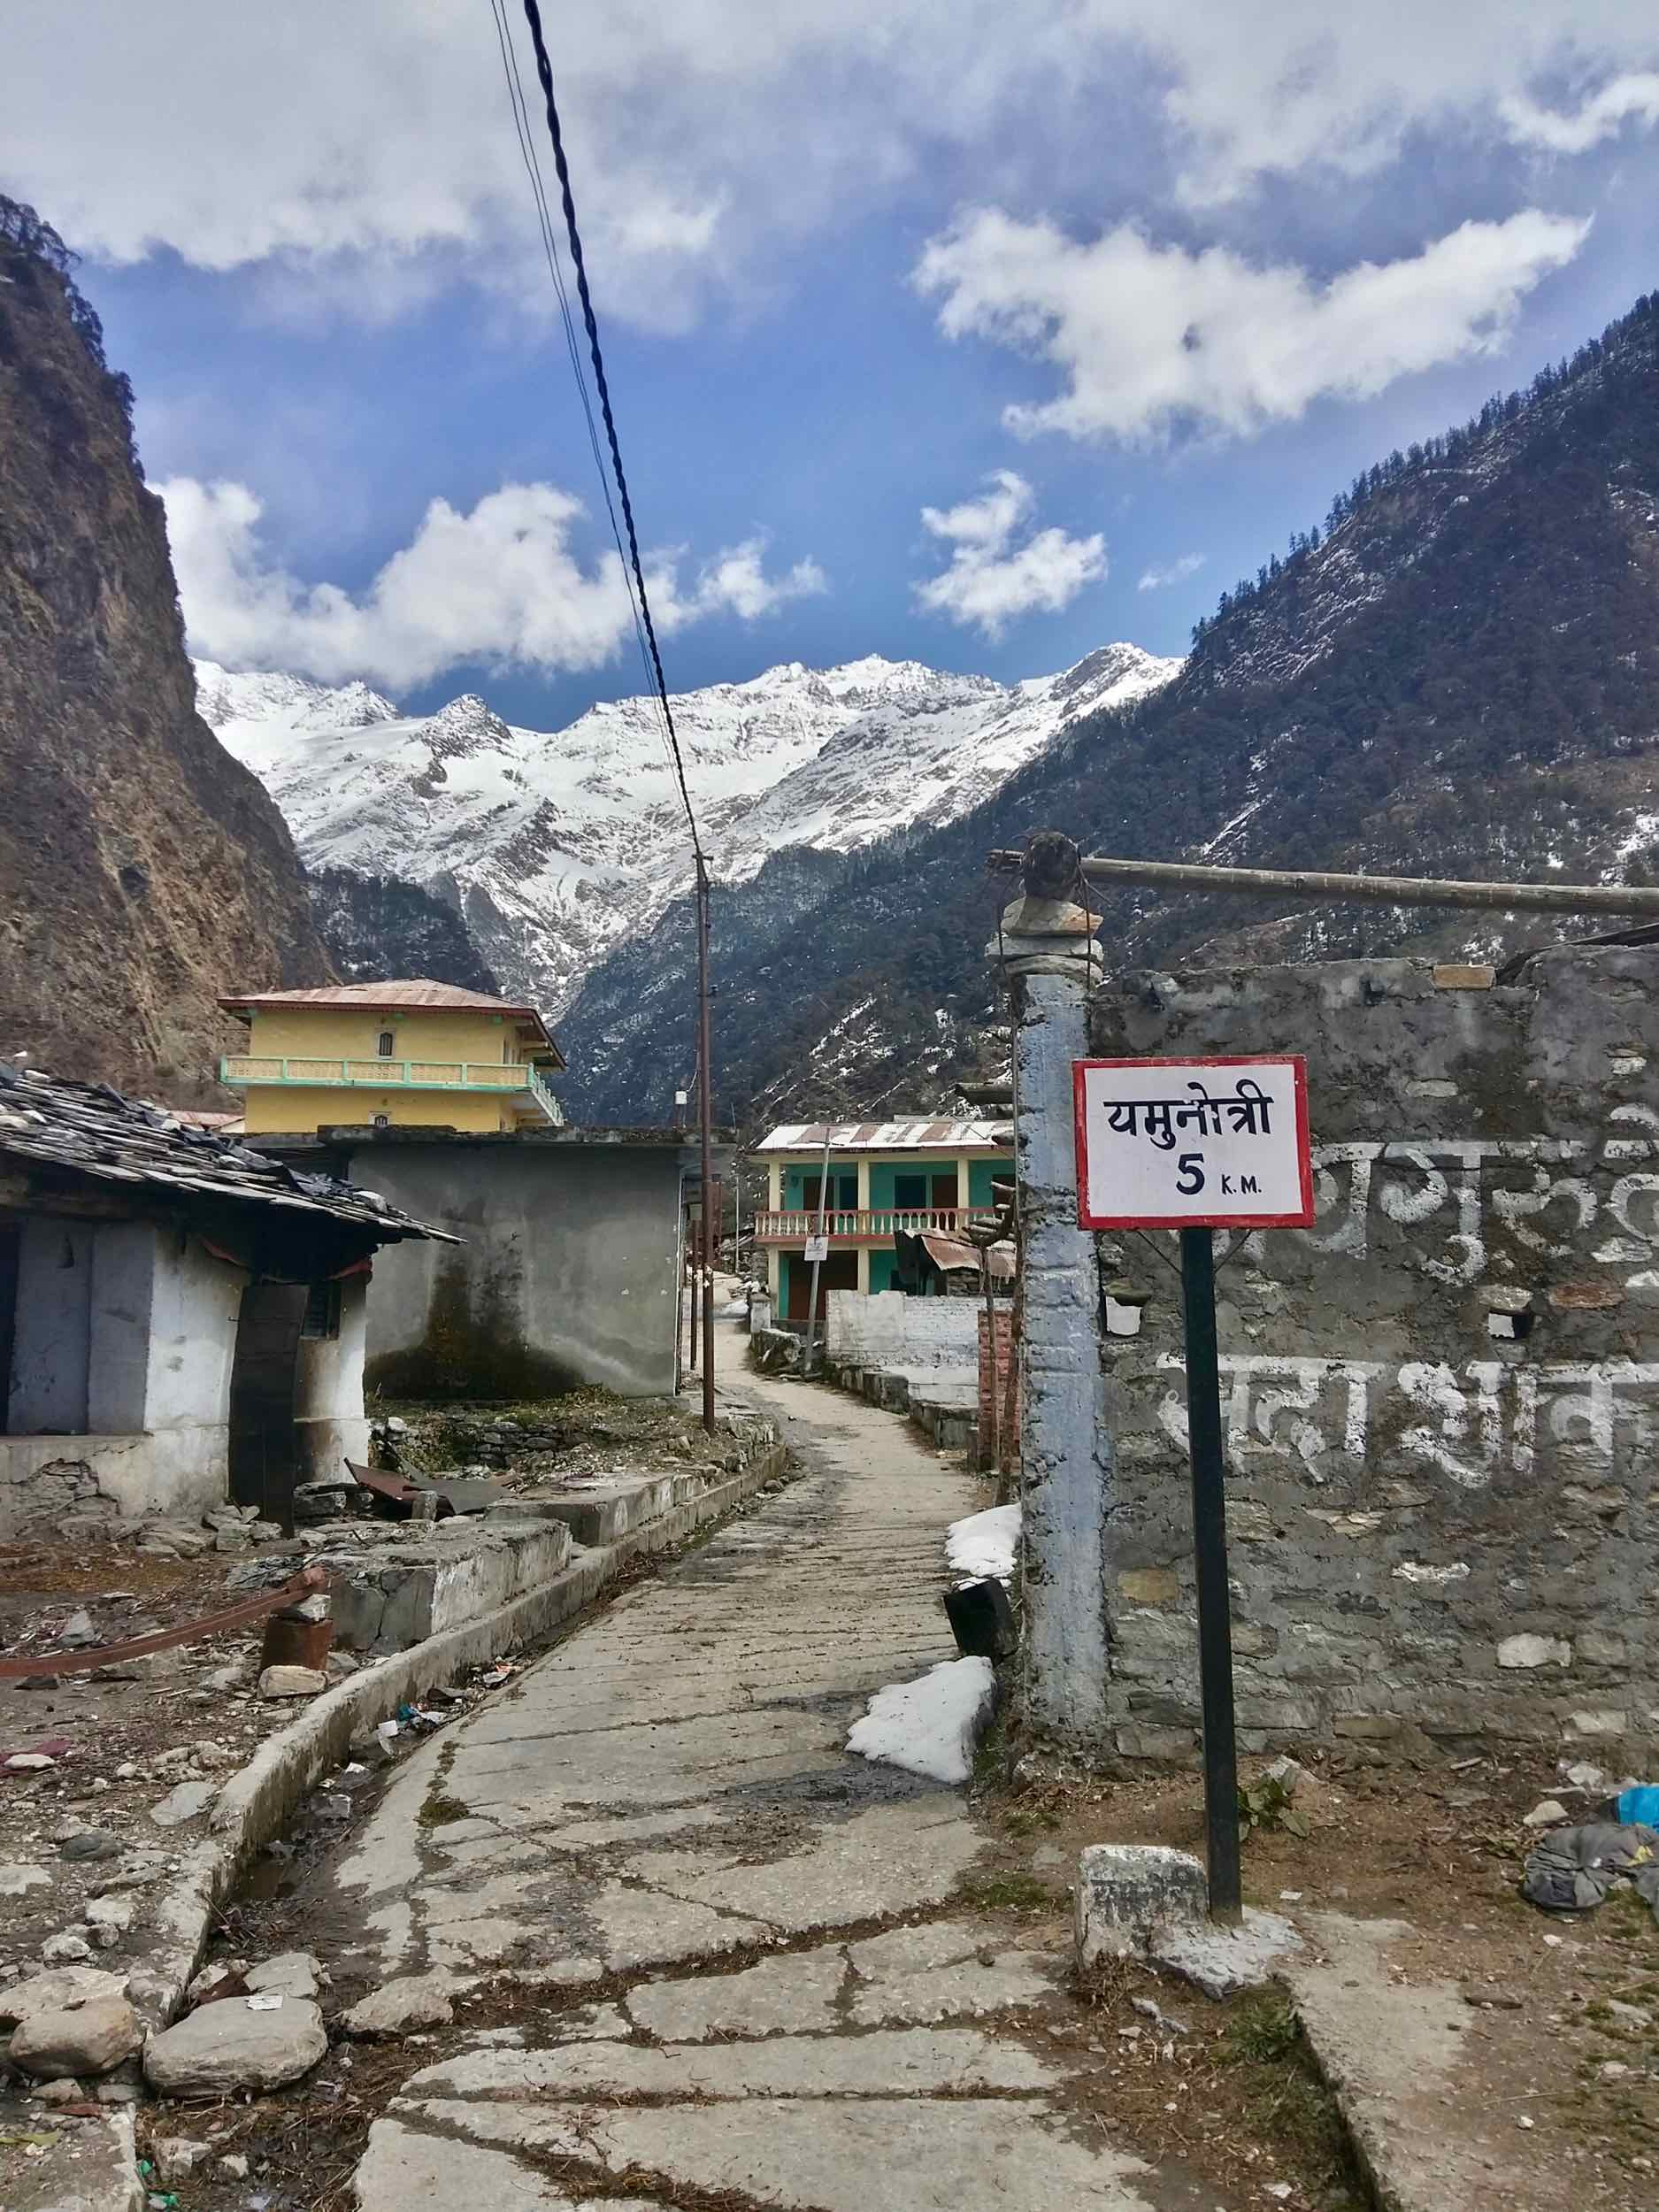 Janki Chatti resembles a ghost town from a western. The main drag lies empty and eerily silent.